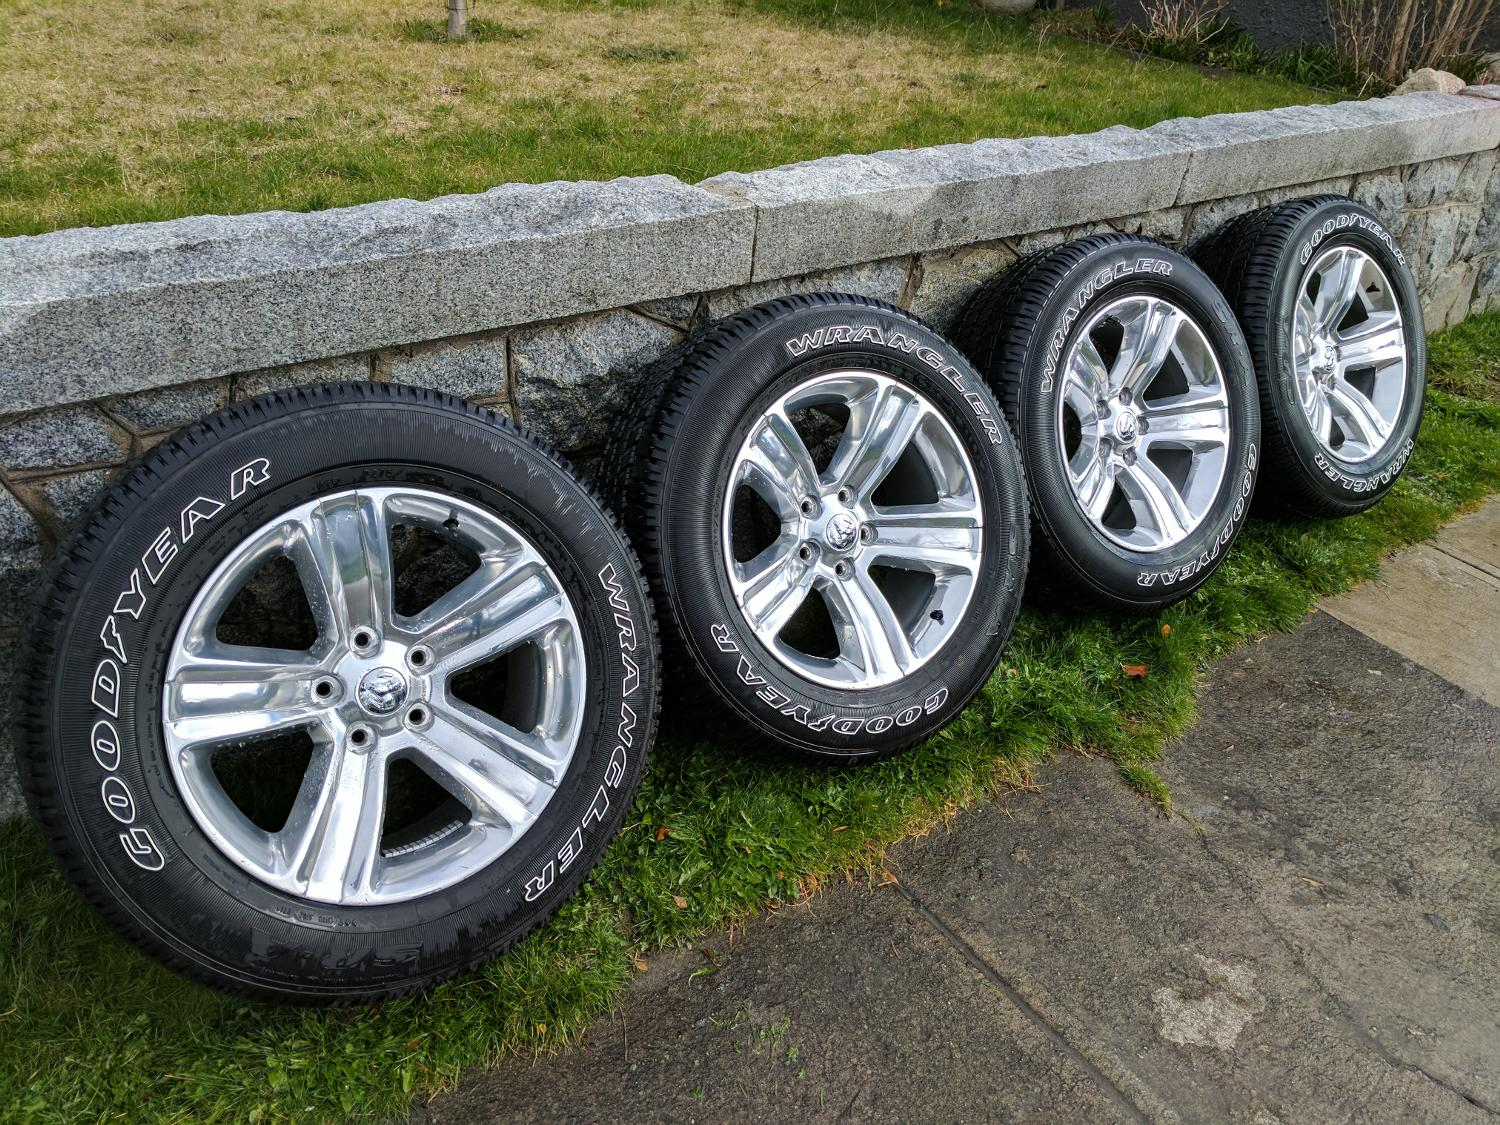 find more obo dodge ram 1500 wheels and tires for sale at up to 90 off victoria bc. Black Bedroom Furniture Sets. Home Design Ideas